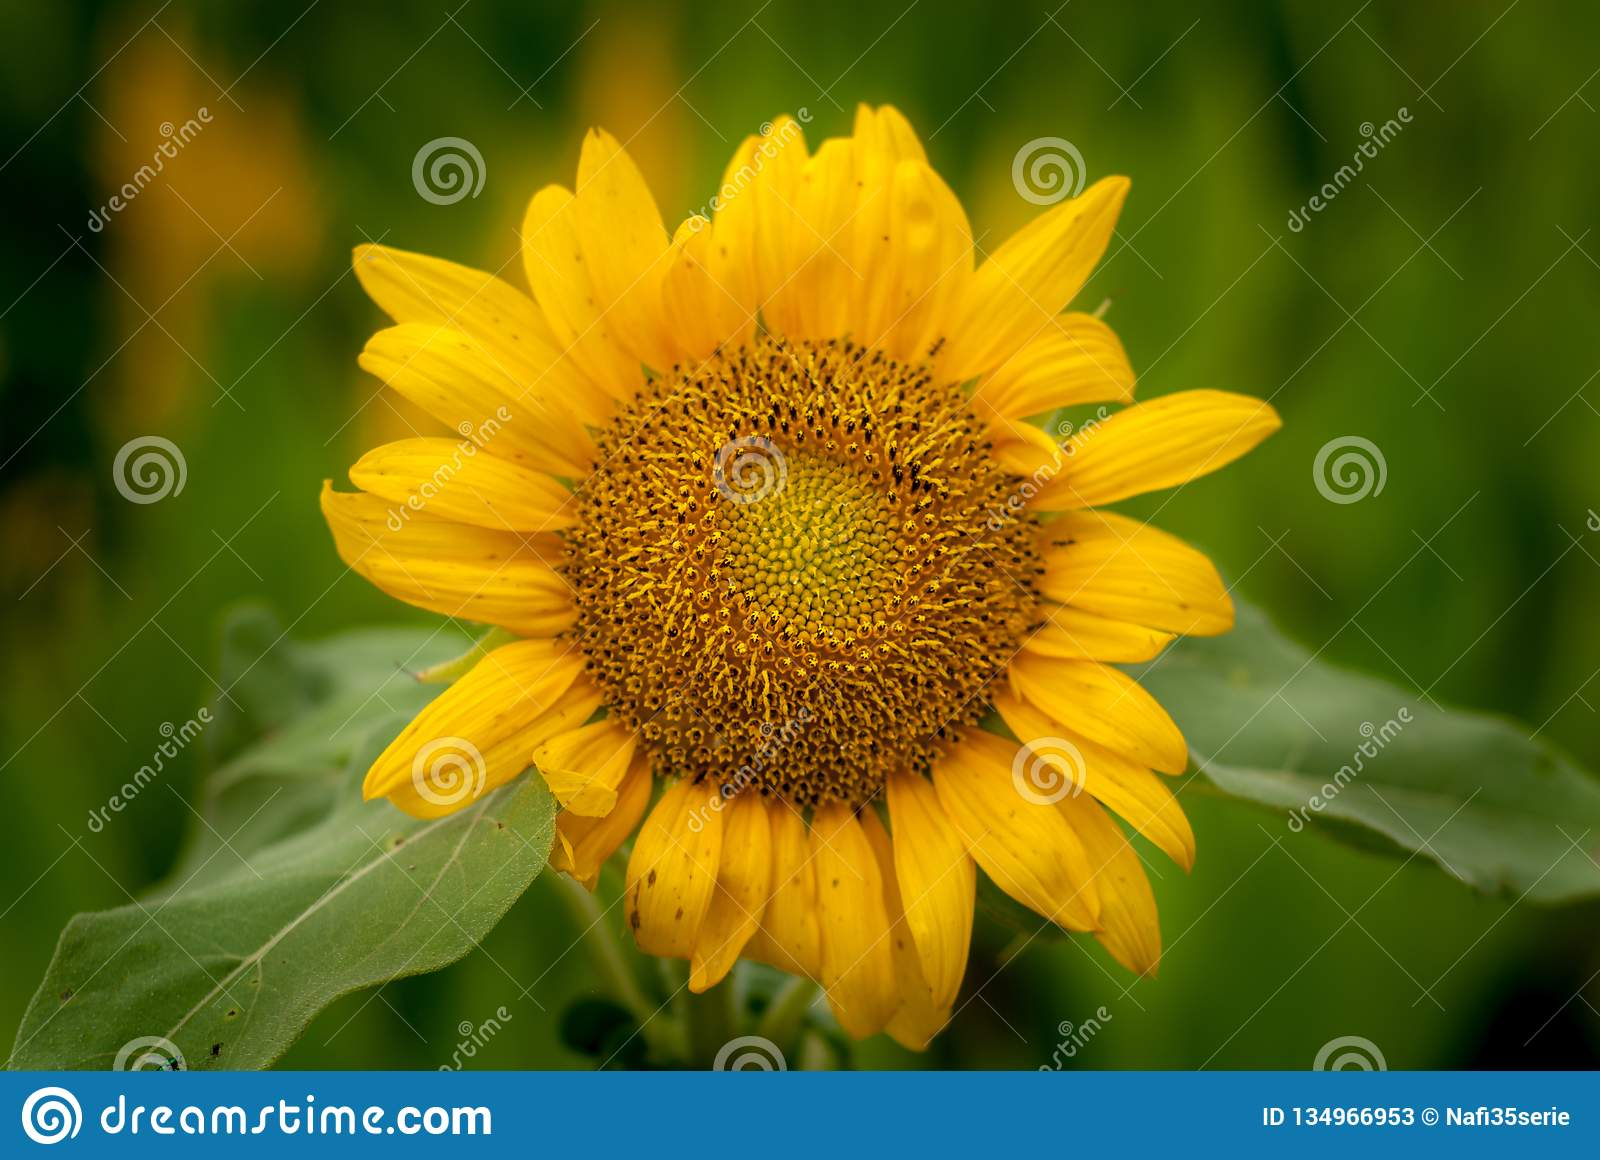 Single sunflowers with blurry backgrounds